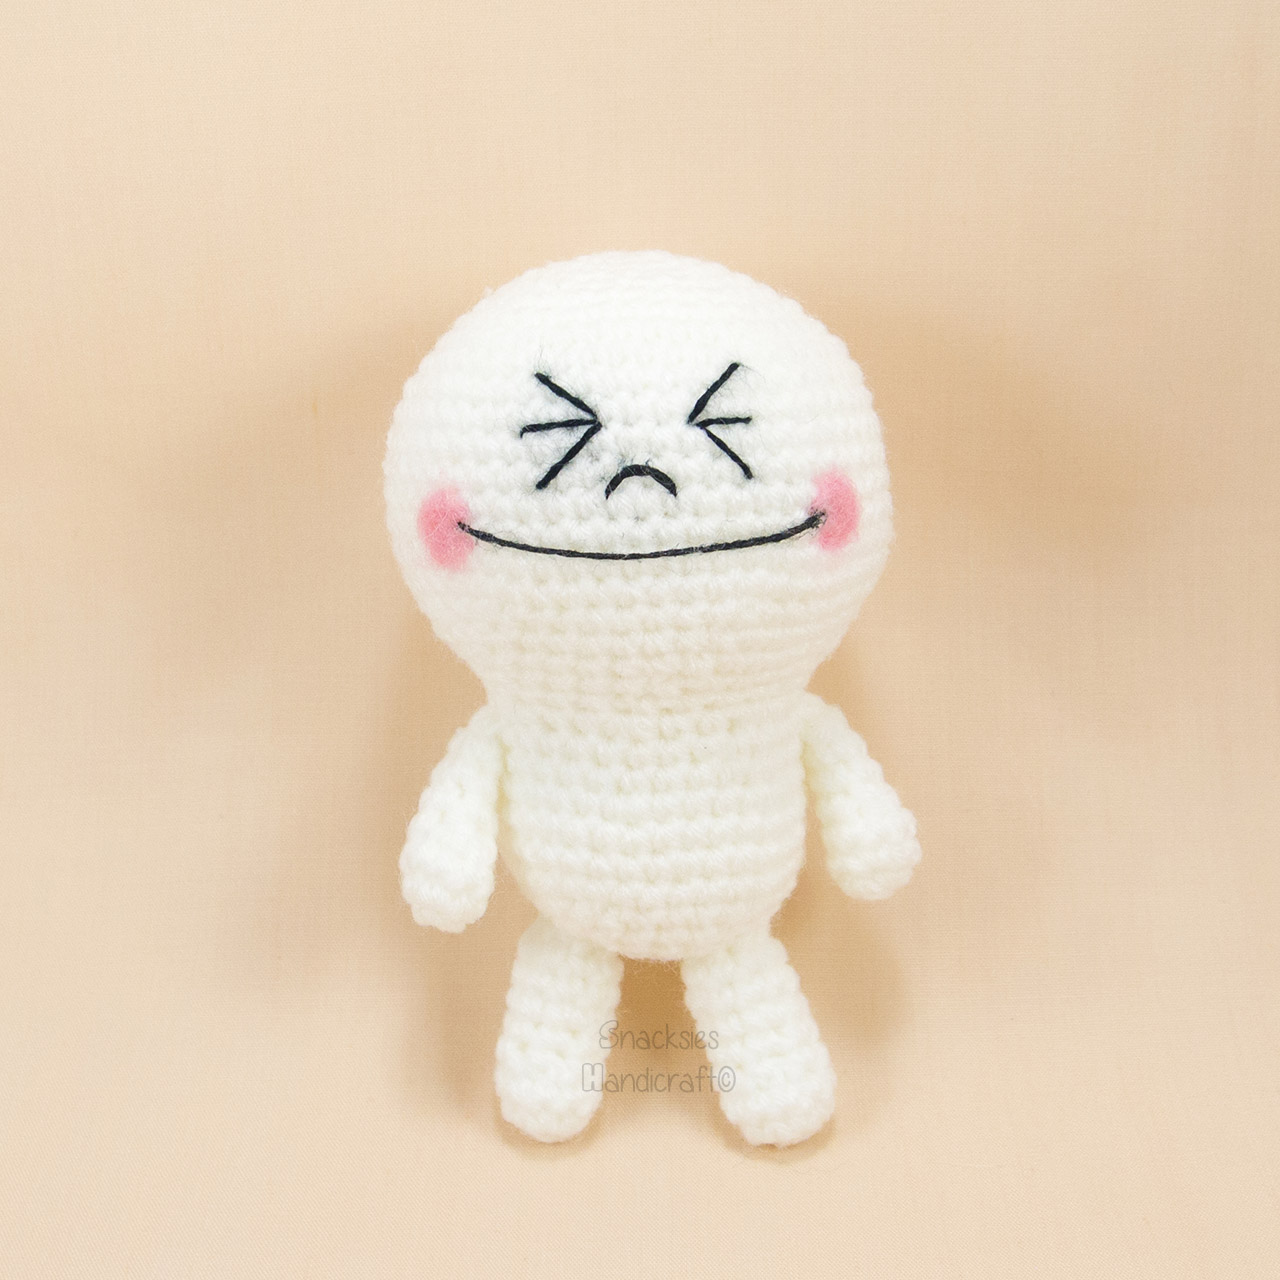 crocheted-line-moon-amigurumi